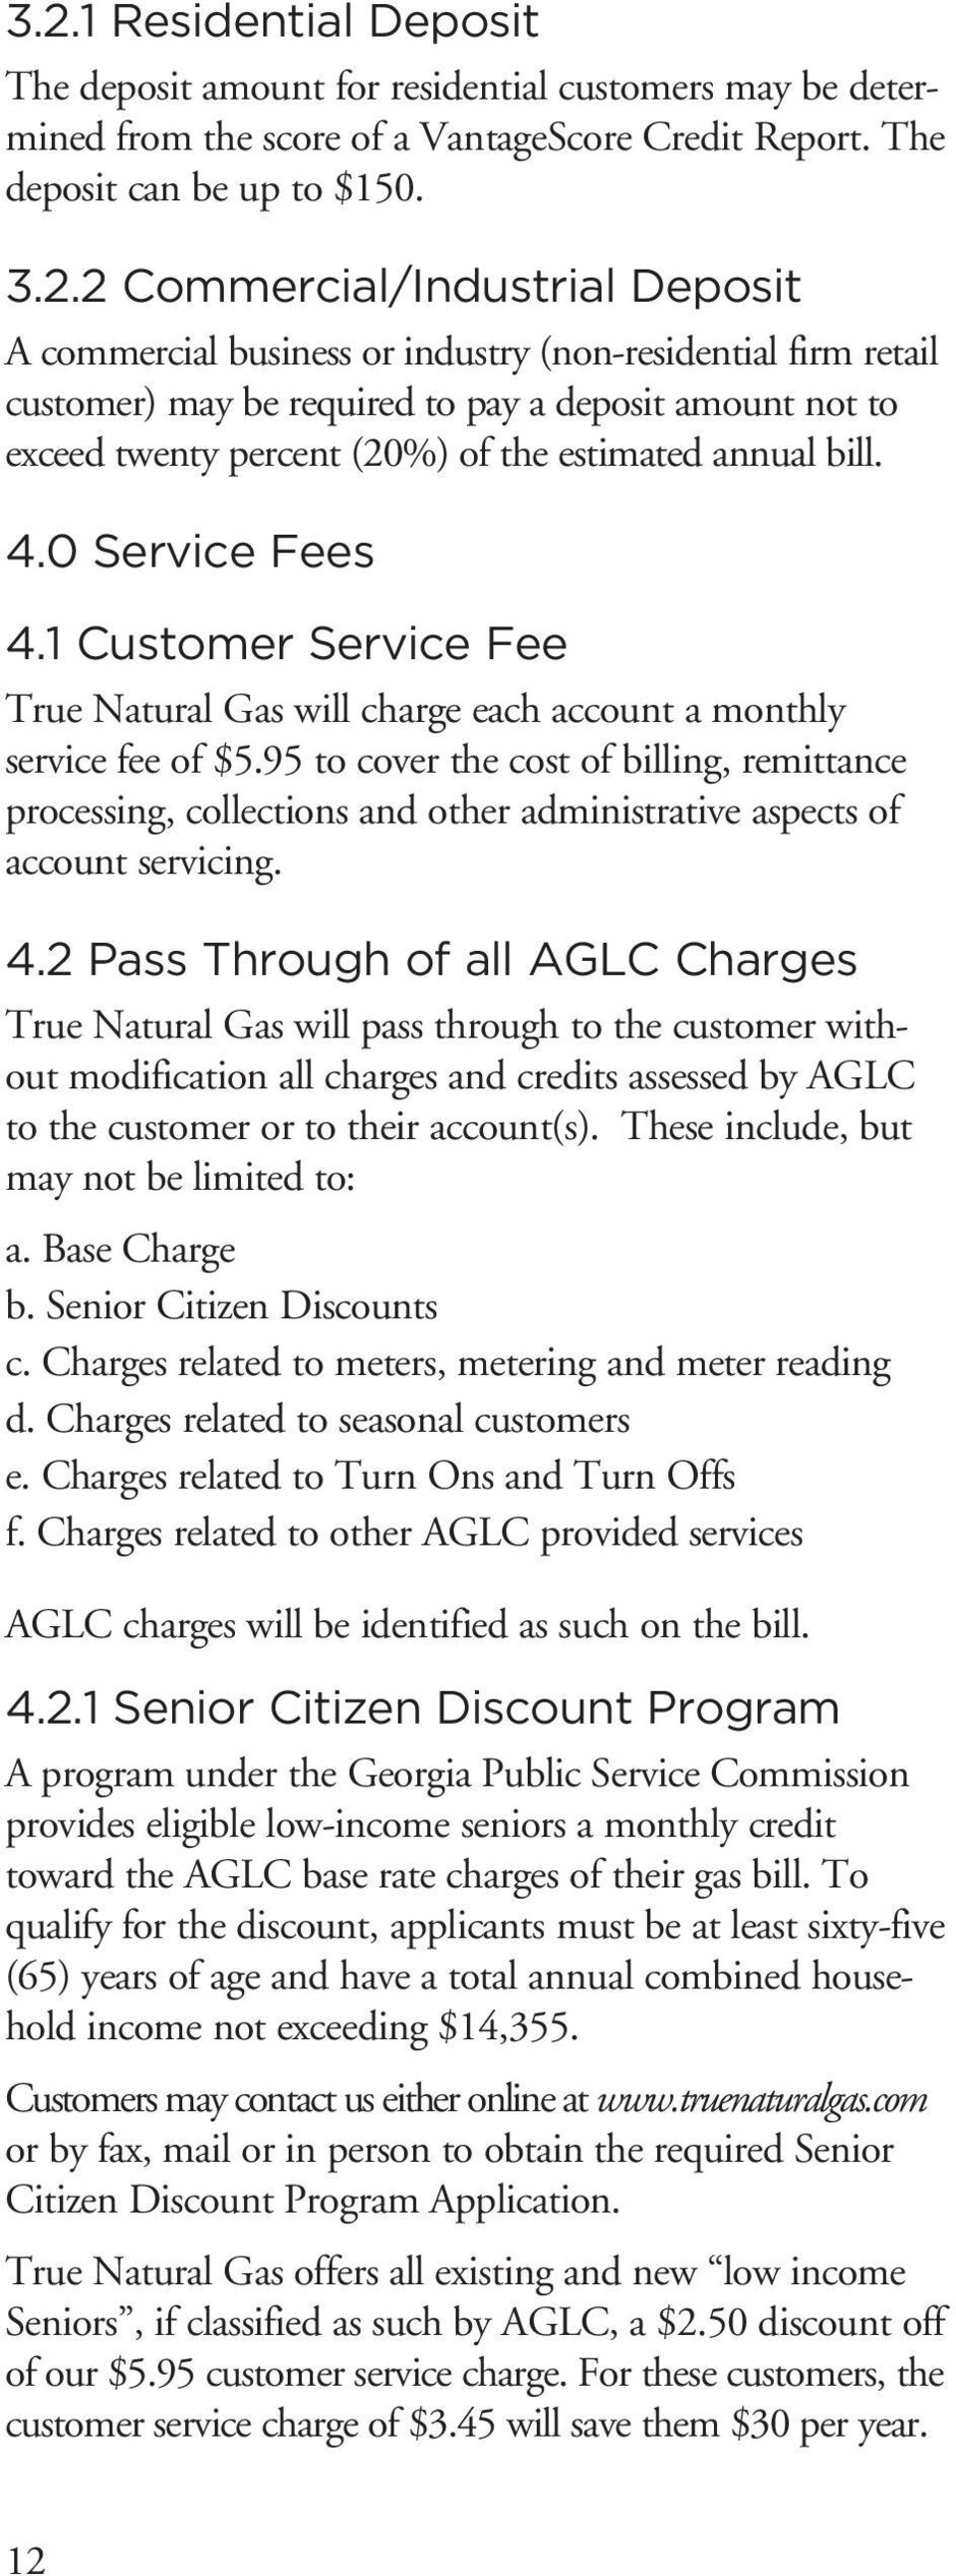 0 Service Fees 4.1 Customer Service Fee True Natural Gas will charge each account a monthly service fee of $5.